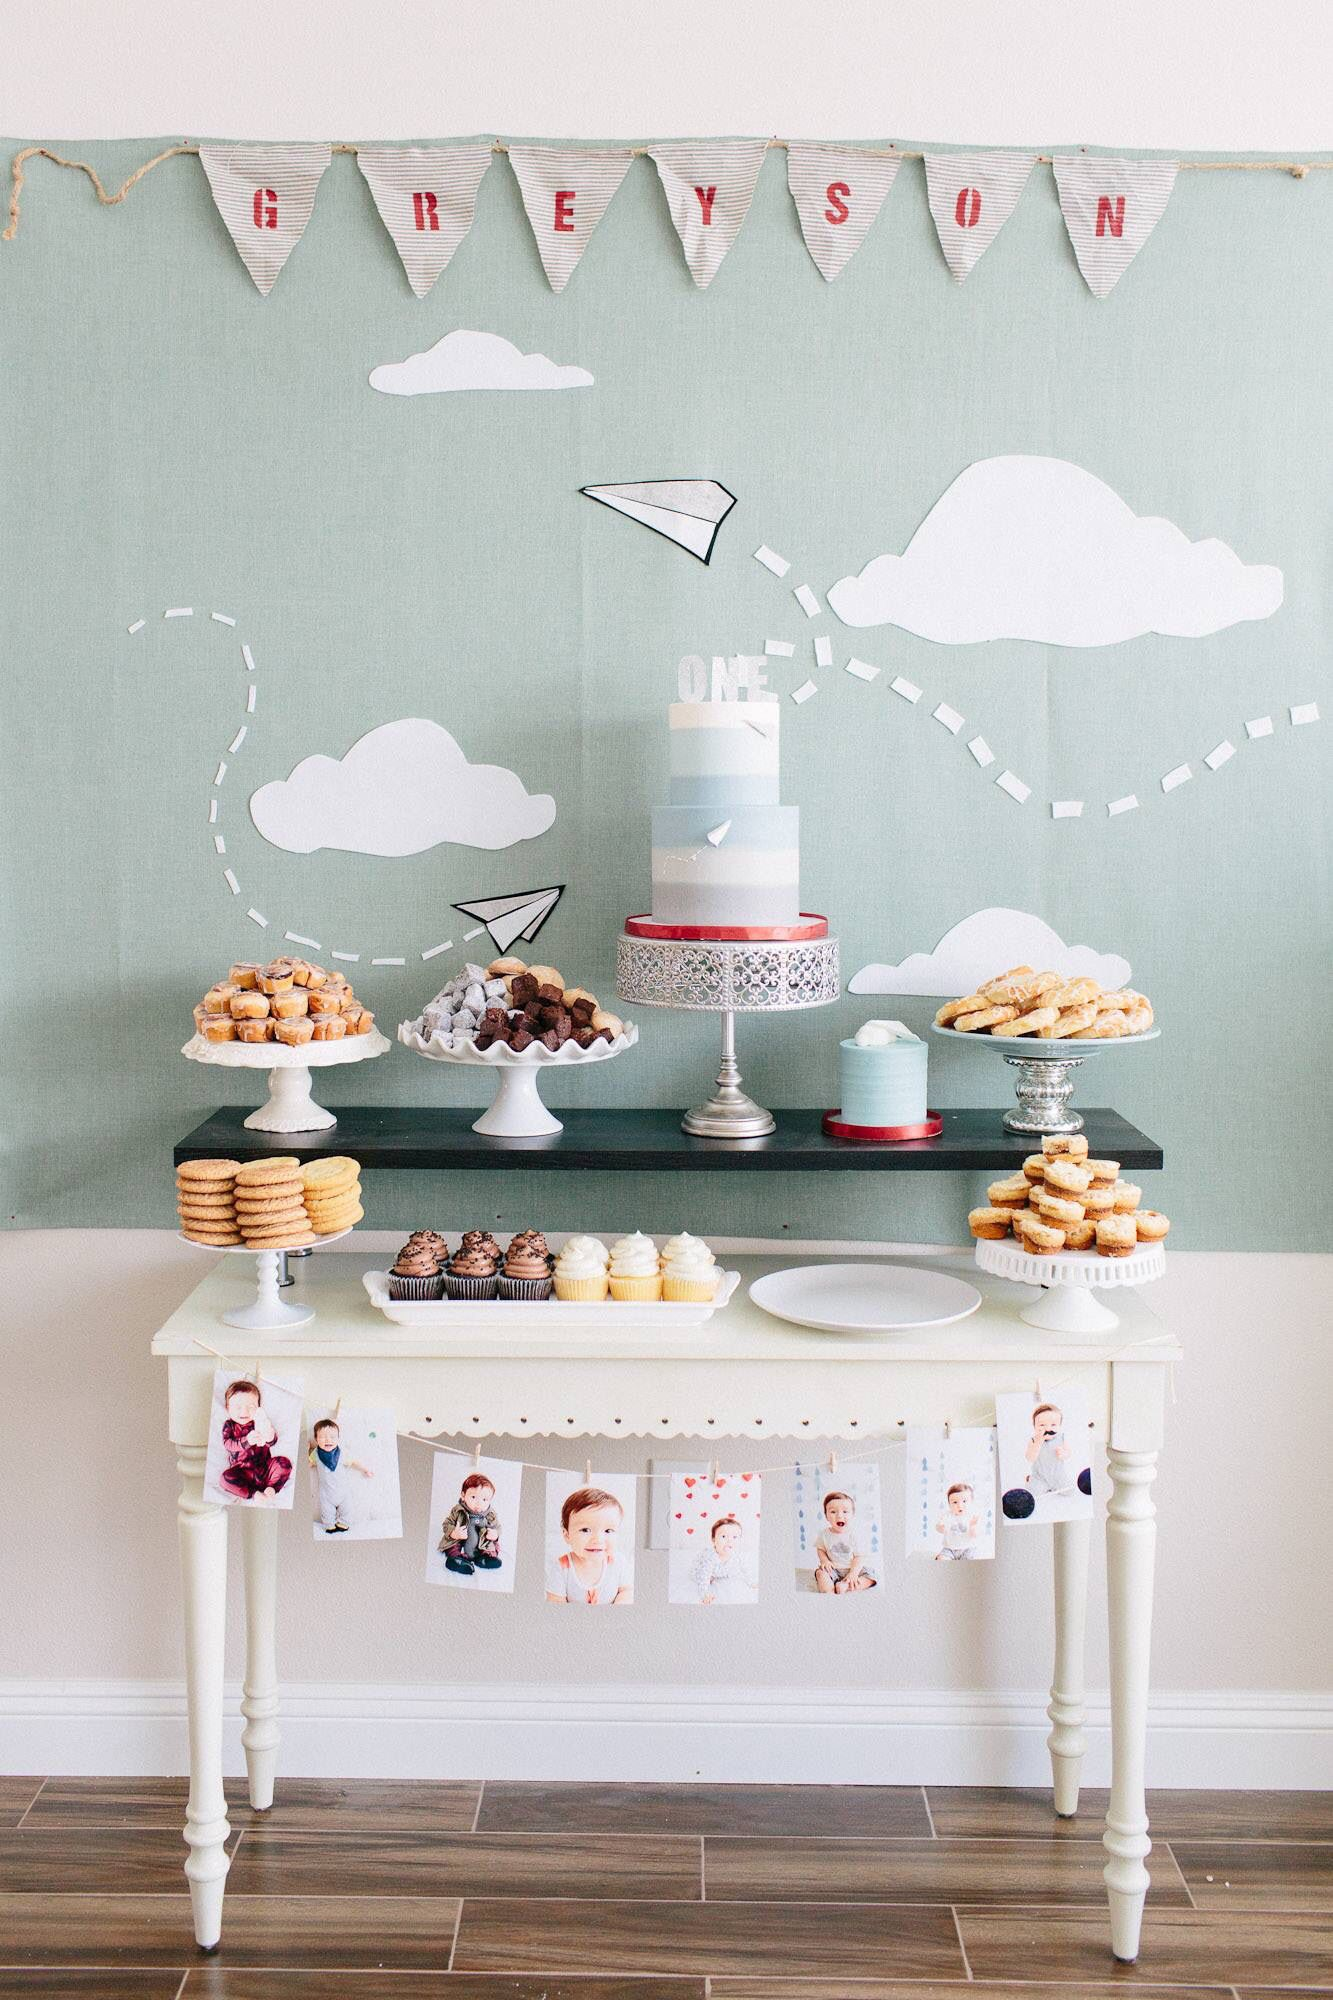 Greyson S First Birthday Paper Plane Themed Cake Table